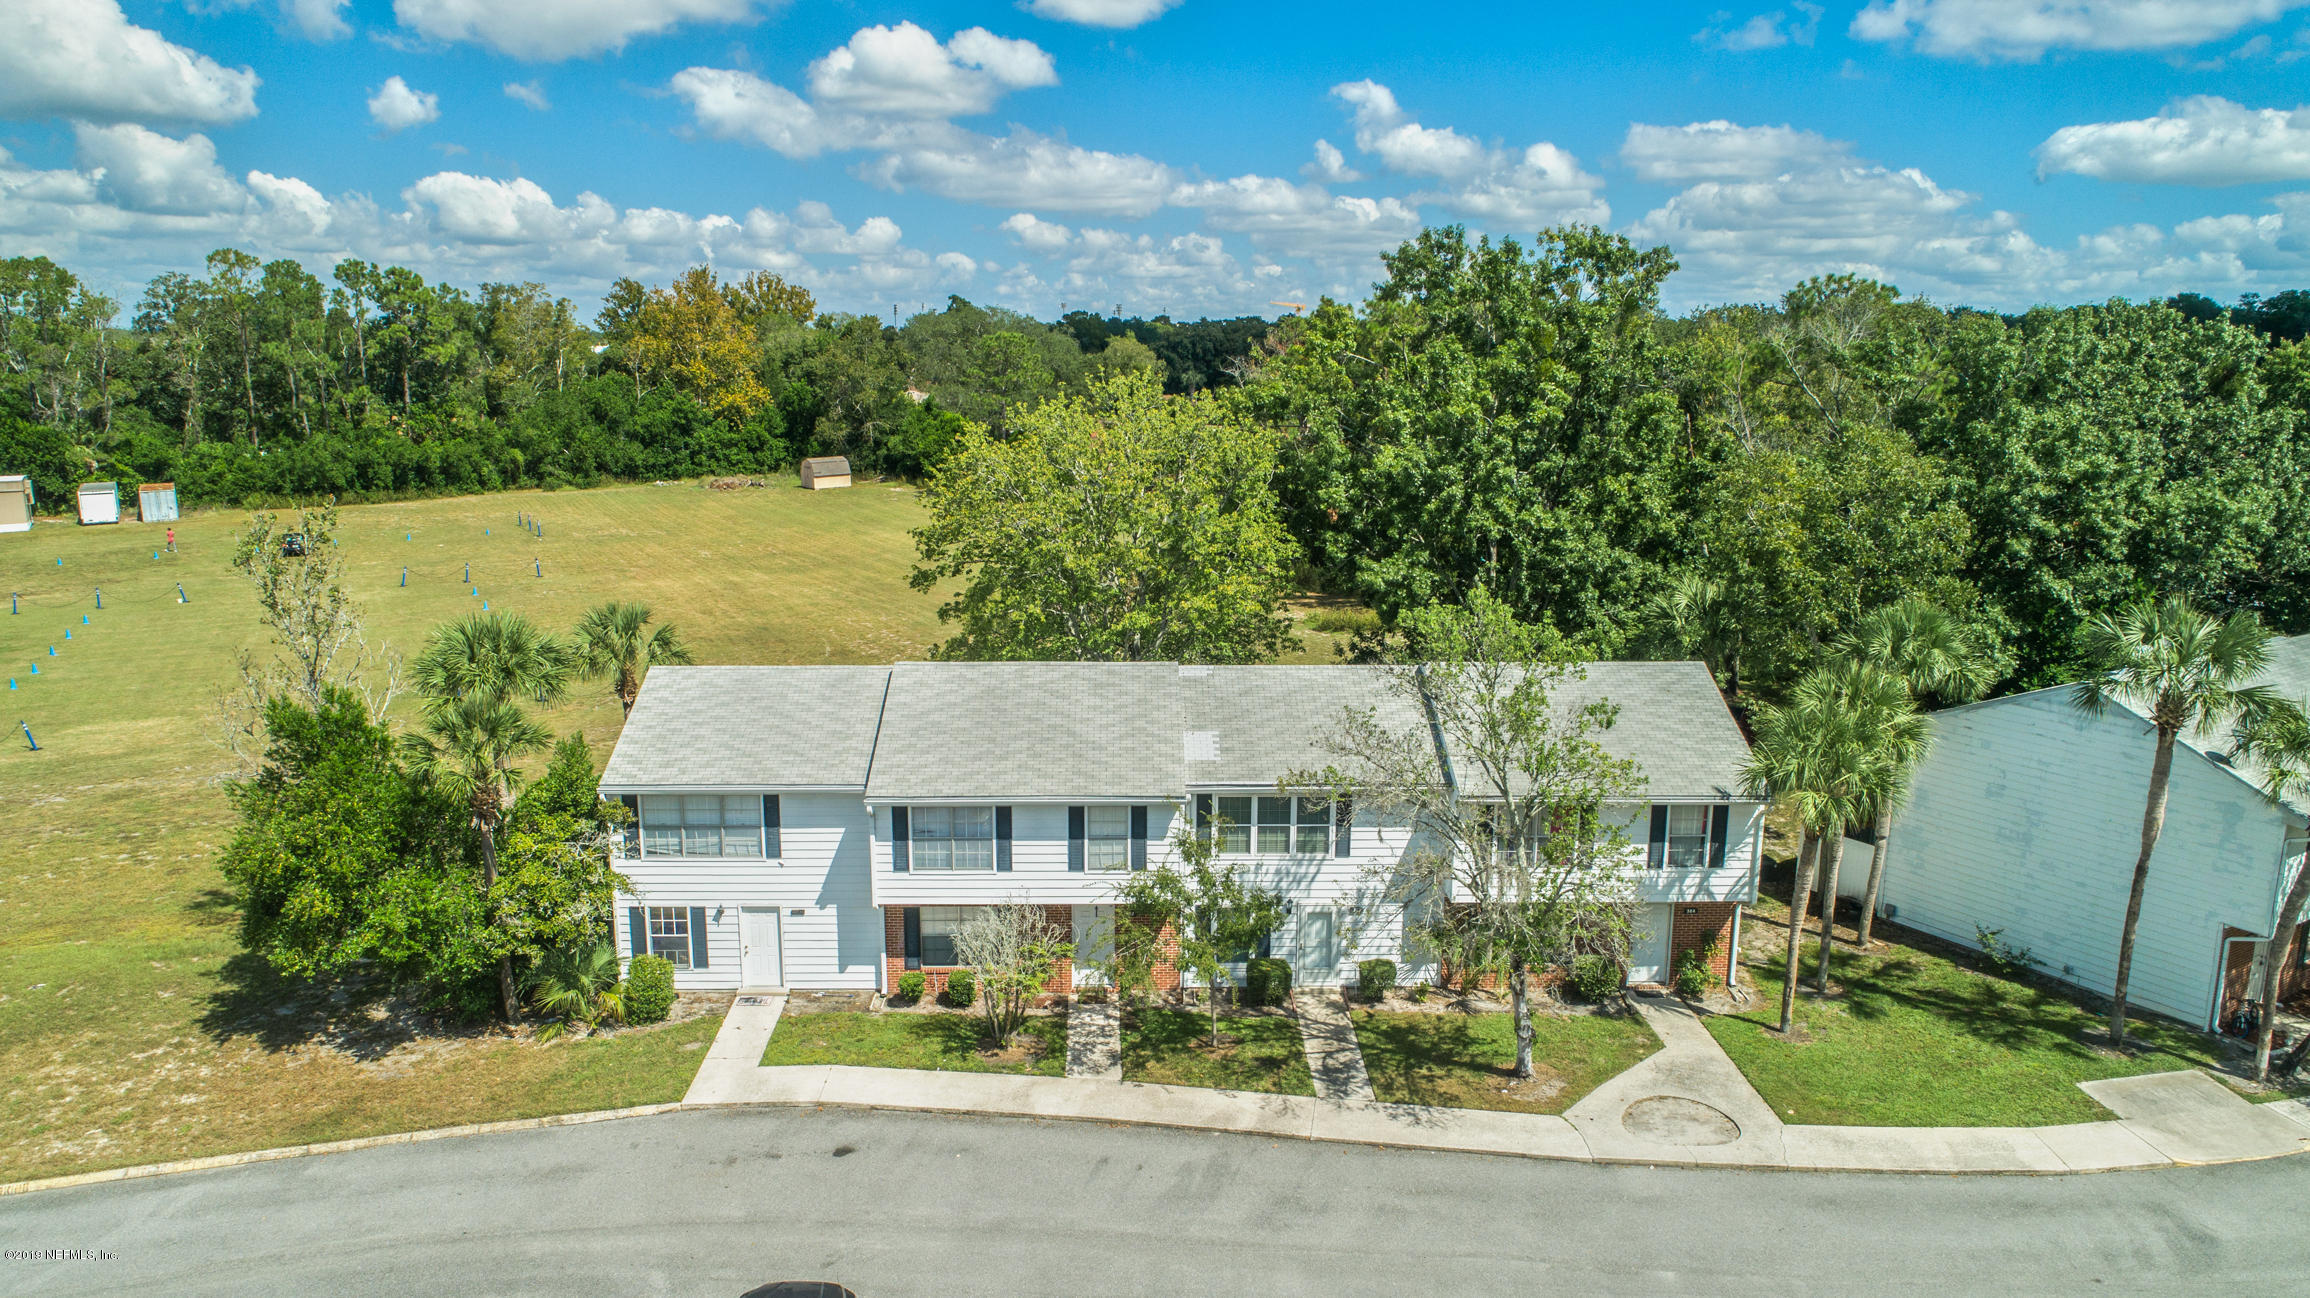 303 KETTERING, ORANGE PARK, FLORIDA 32073, 2 Bedrooms Bedrooms, ,1 BathroomBathrooms,Condo,For sale,KETTERING,1019468